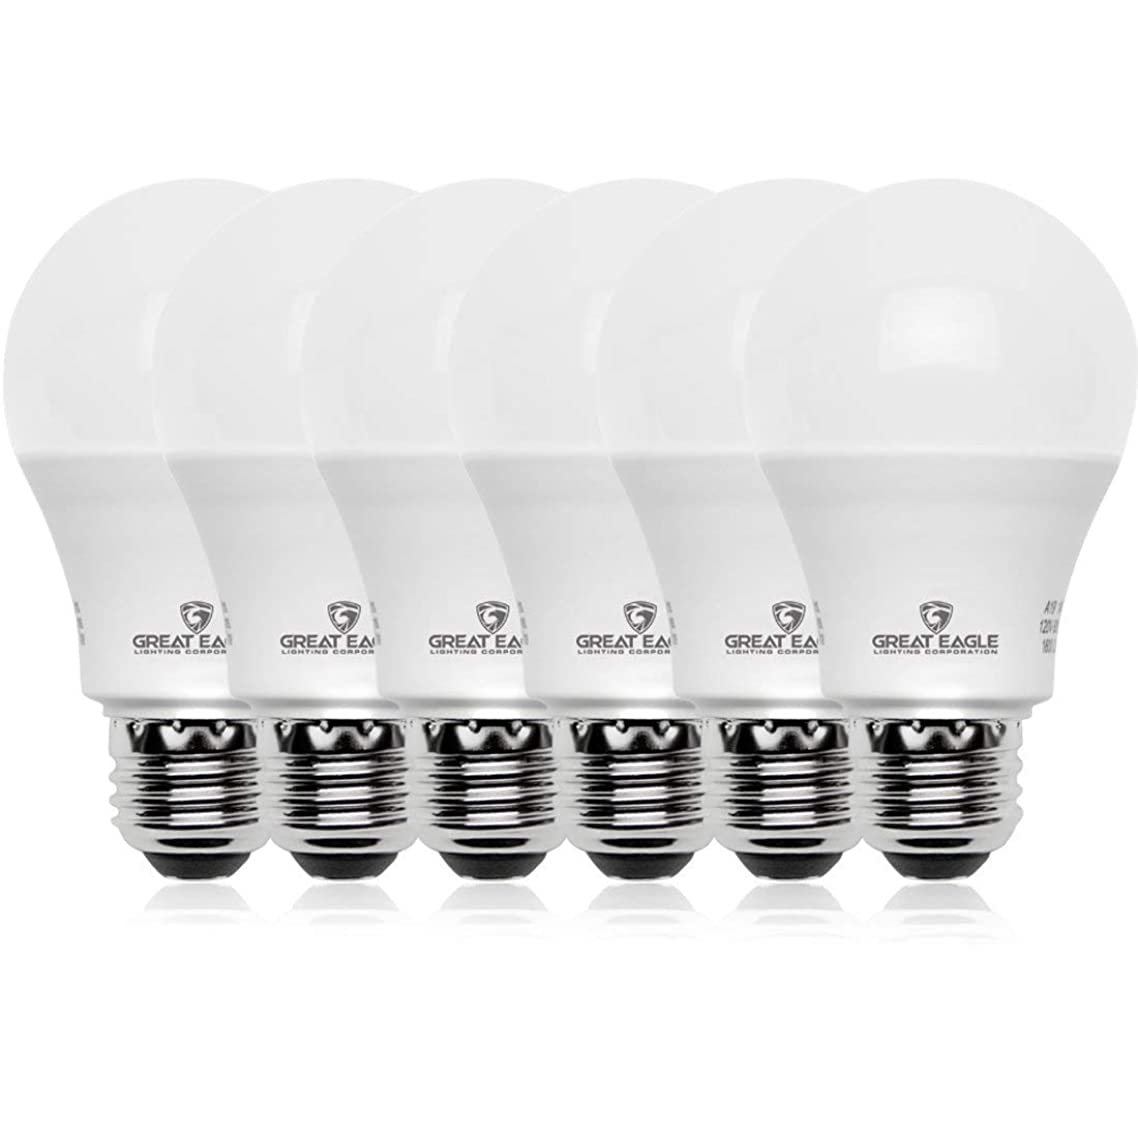 Great Eagle 100W Equivalent LED Light Bulb 1550 Lumens A19 Bright White 3000K Dimmable 14-Watt UL Listed (6-Pack)